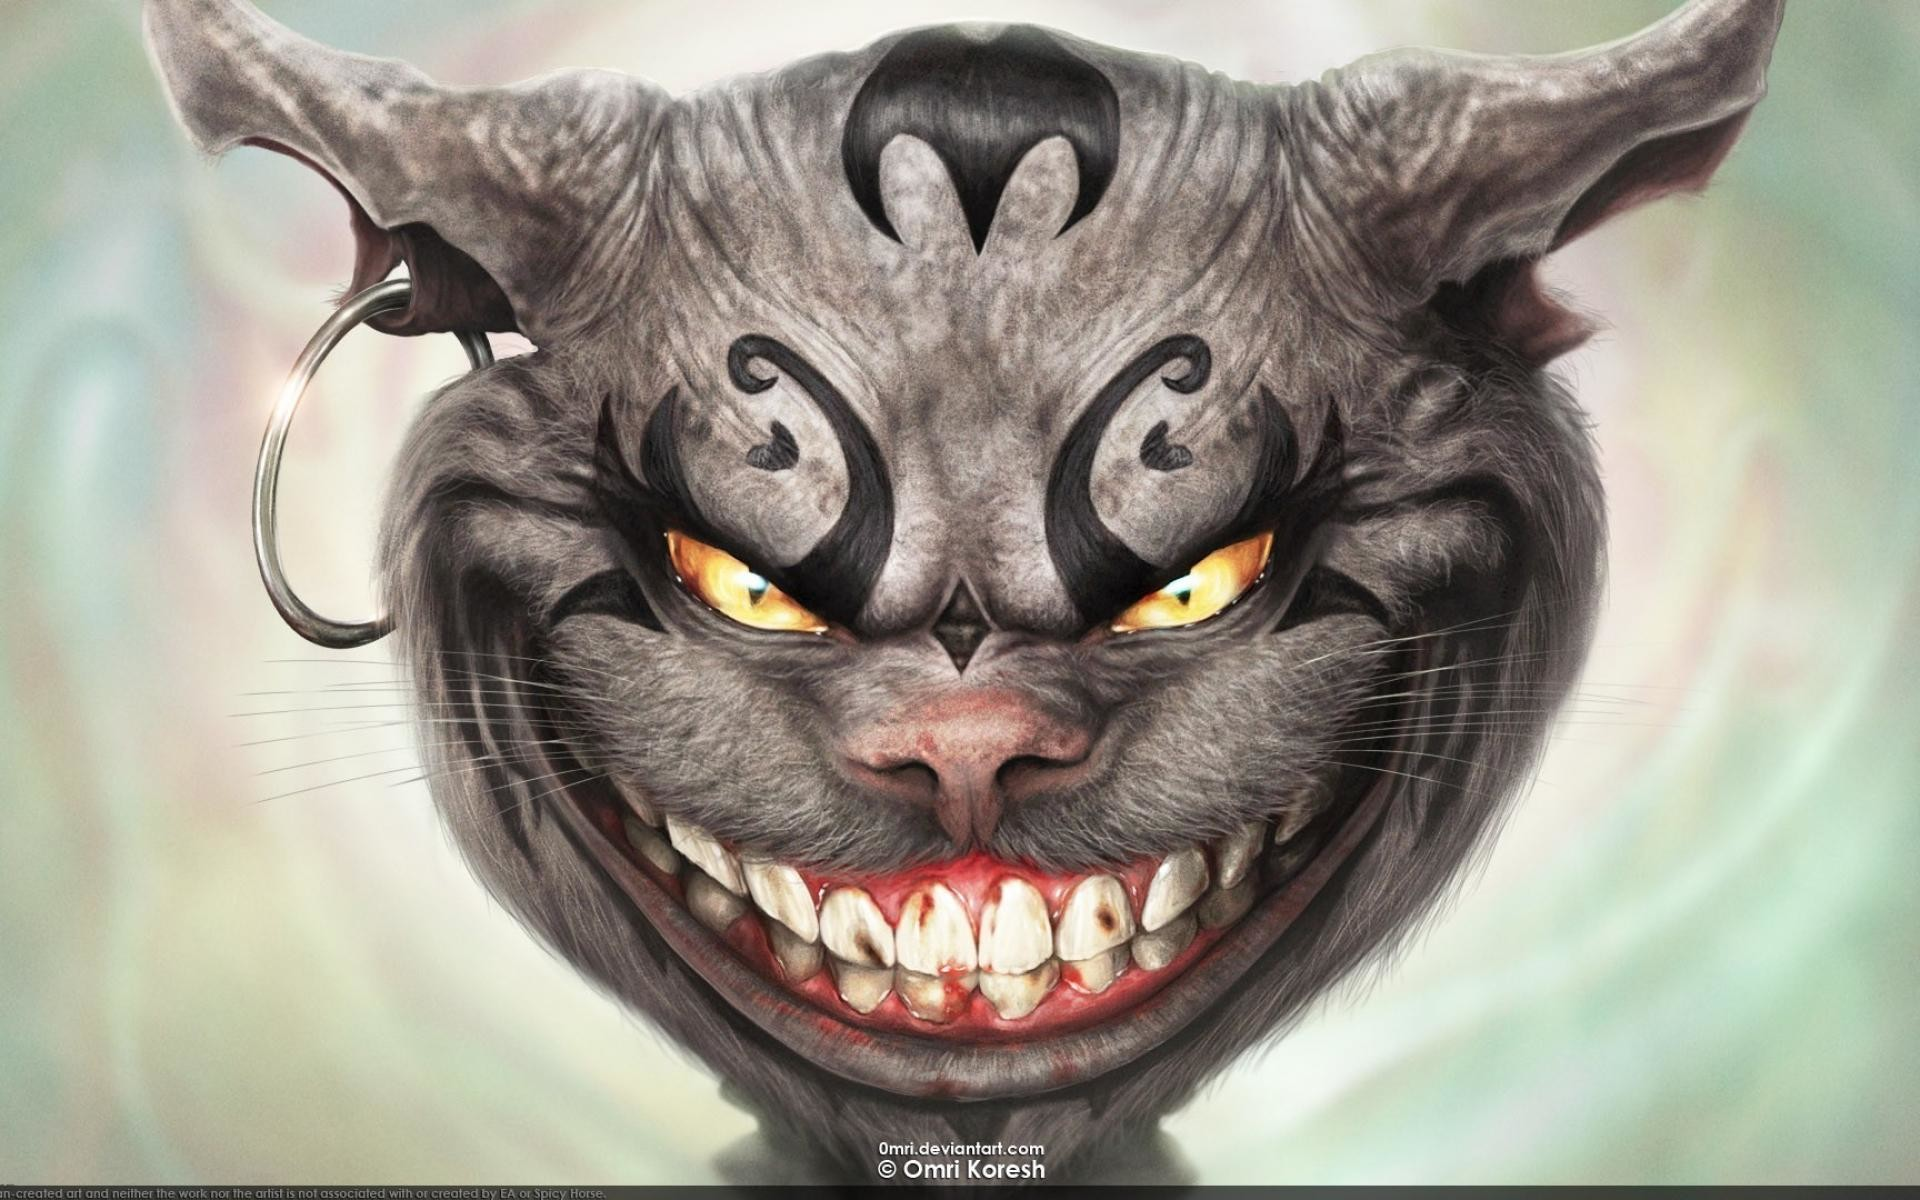 This cat scares dogs p